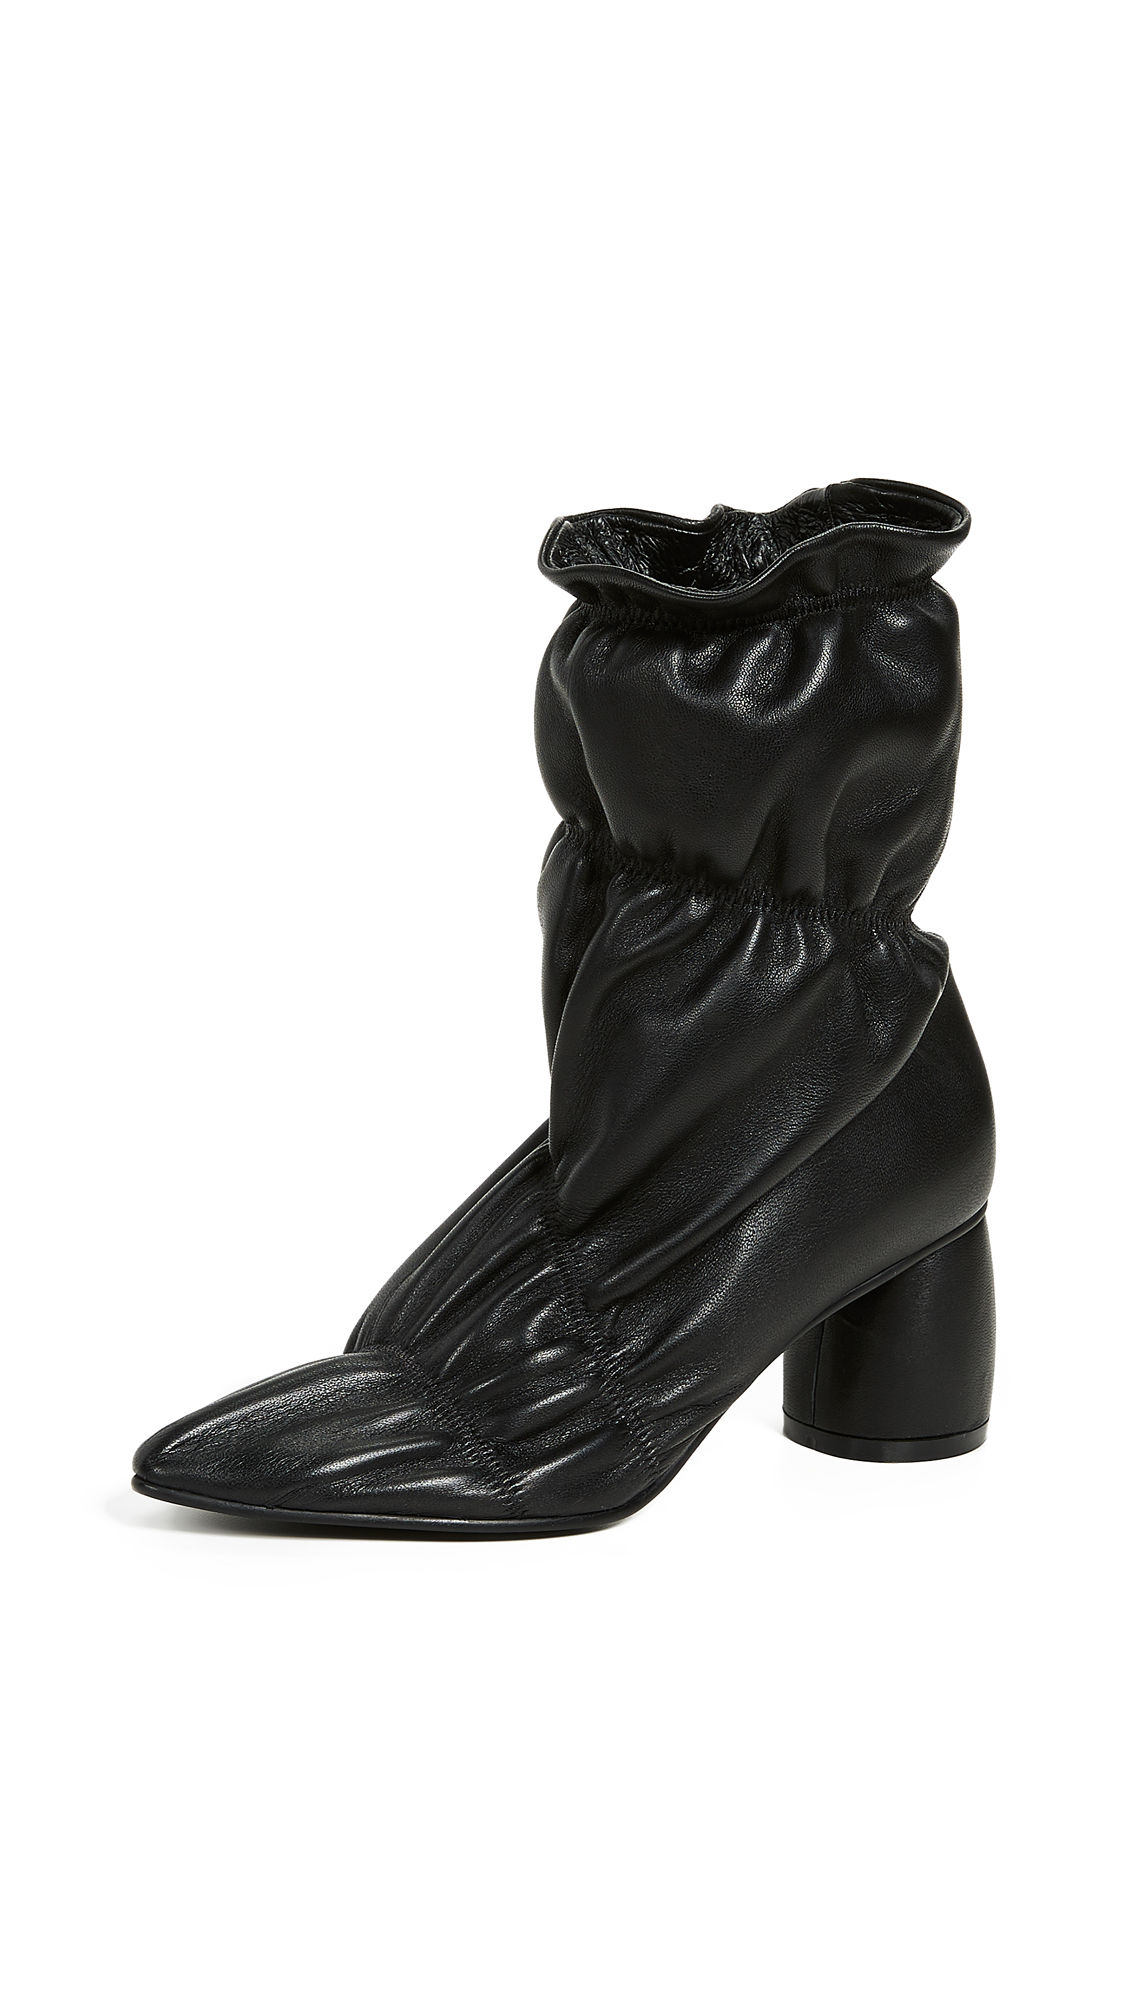 Black Parachute 60 Leather Ankle Boots